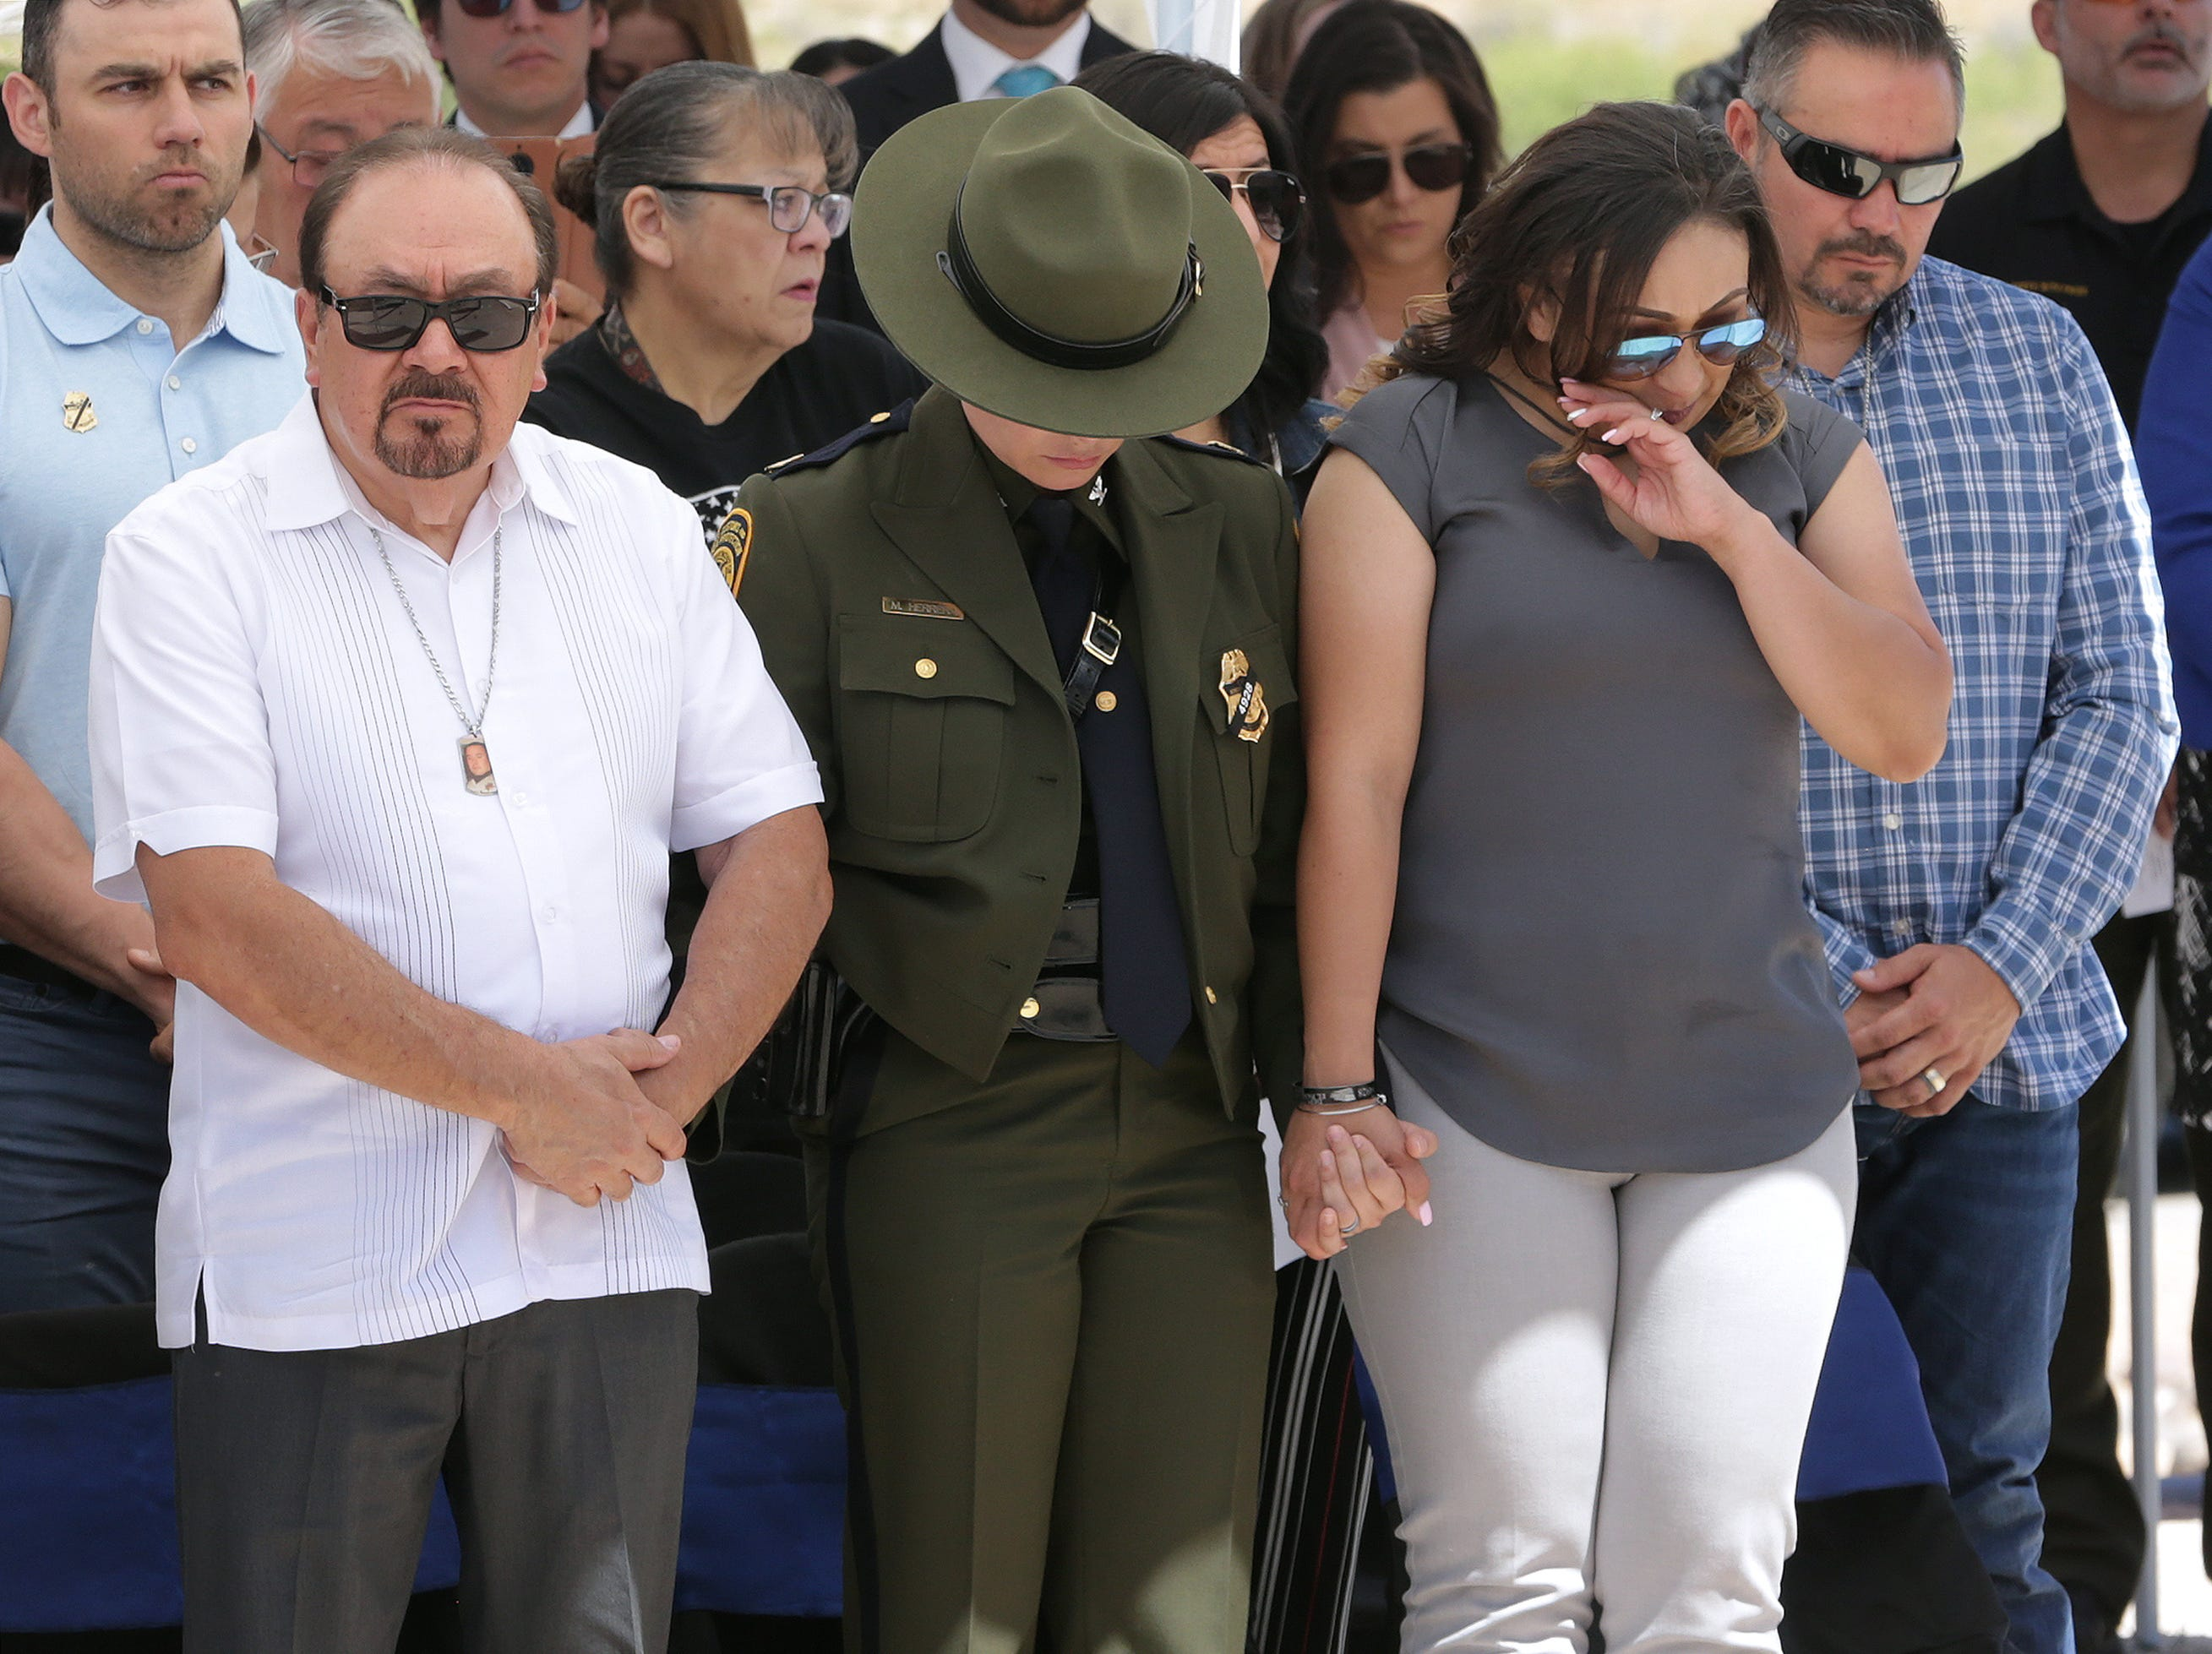 The El Paso County Sheriff's Office held its annual memorial Tuesday, May 14, 2019, at its headquarters in east El Paso. Deputy Peter Herrera's name was added to the County Law Enforcement Memorial this year after he was shot and killed during a traffic stop in San Elizario. Herrera's father, Luis Herrera, and widow, Ashley Herrera, react after unveiling his name.